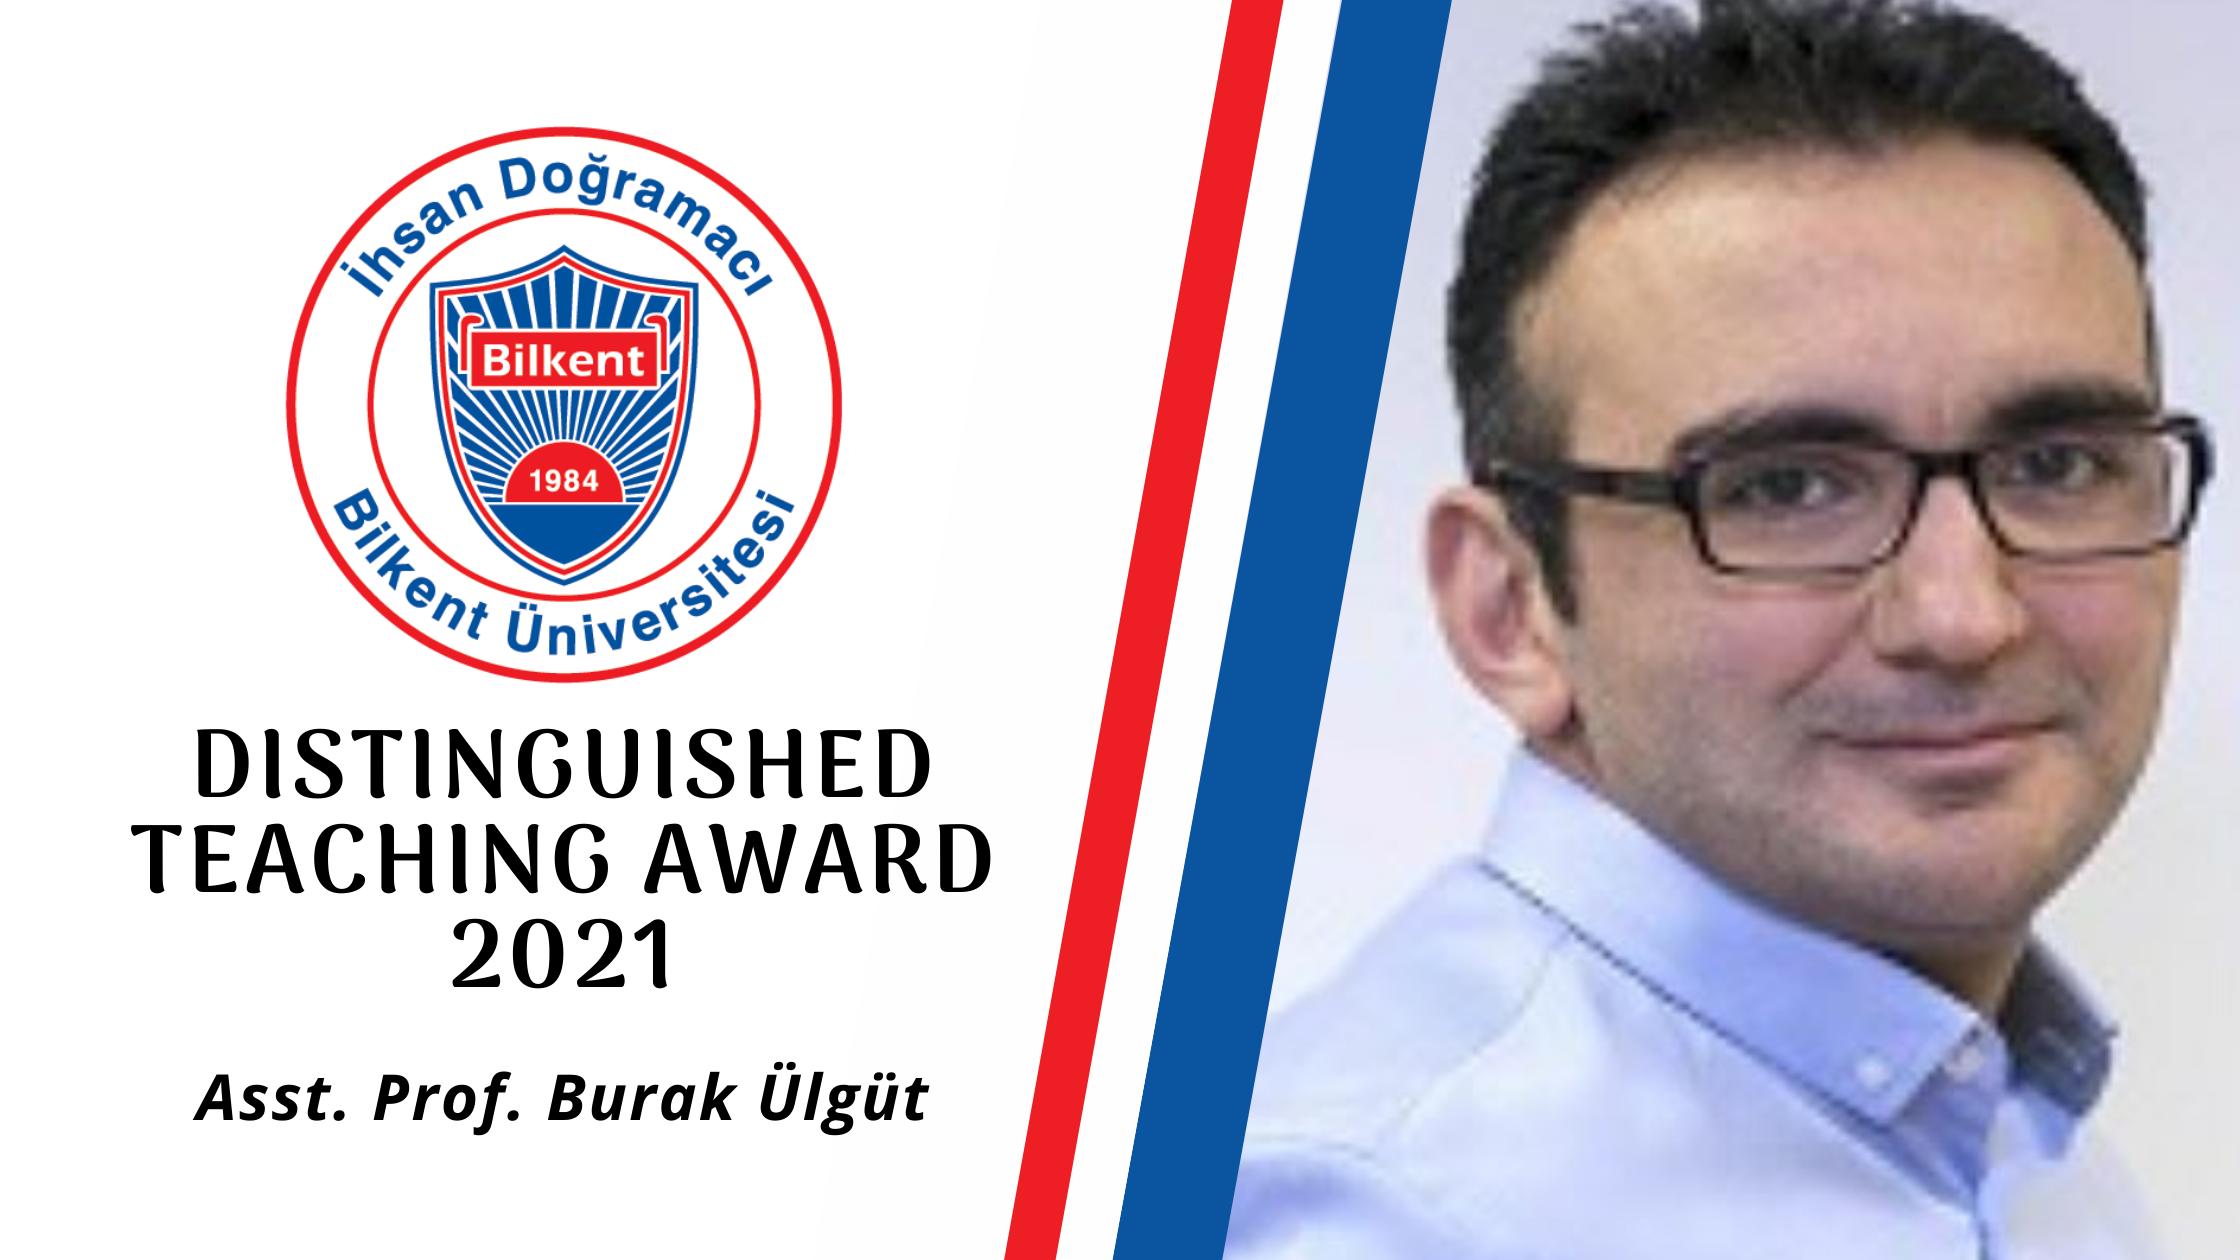 Asst. Prof. Burak Ülgüt Receives Distinguished Teaching Award for 2021